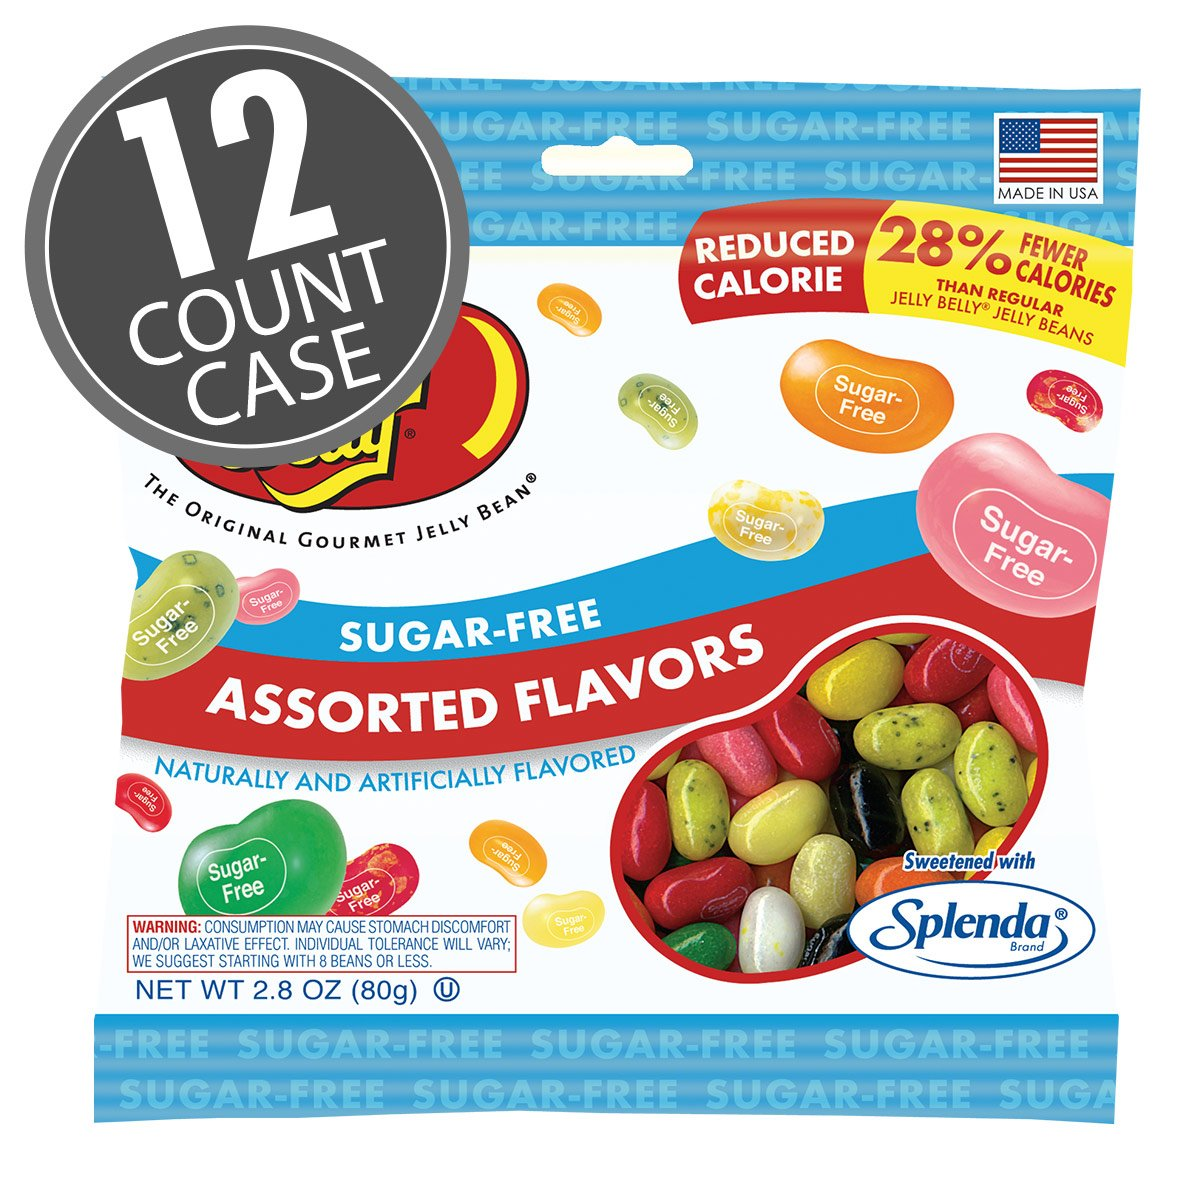 Sugar-Free Jelly Belly Jelly Beans - 12 x 2.8 Ounce Bags - Genuine, Official, Straight from the Source